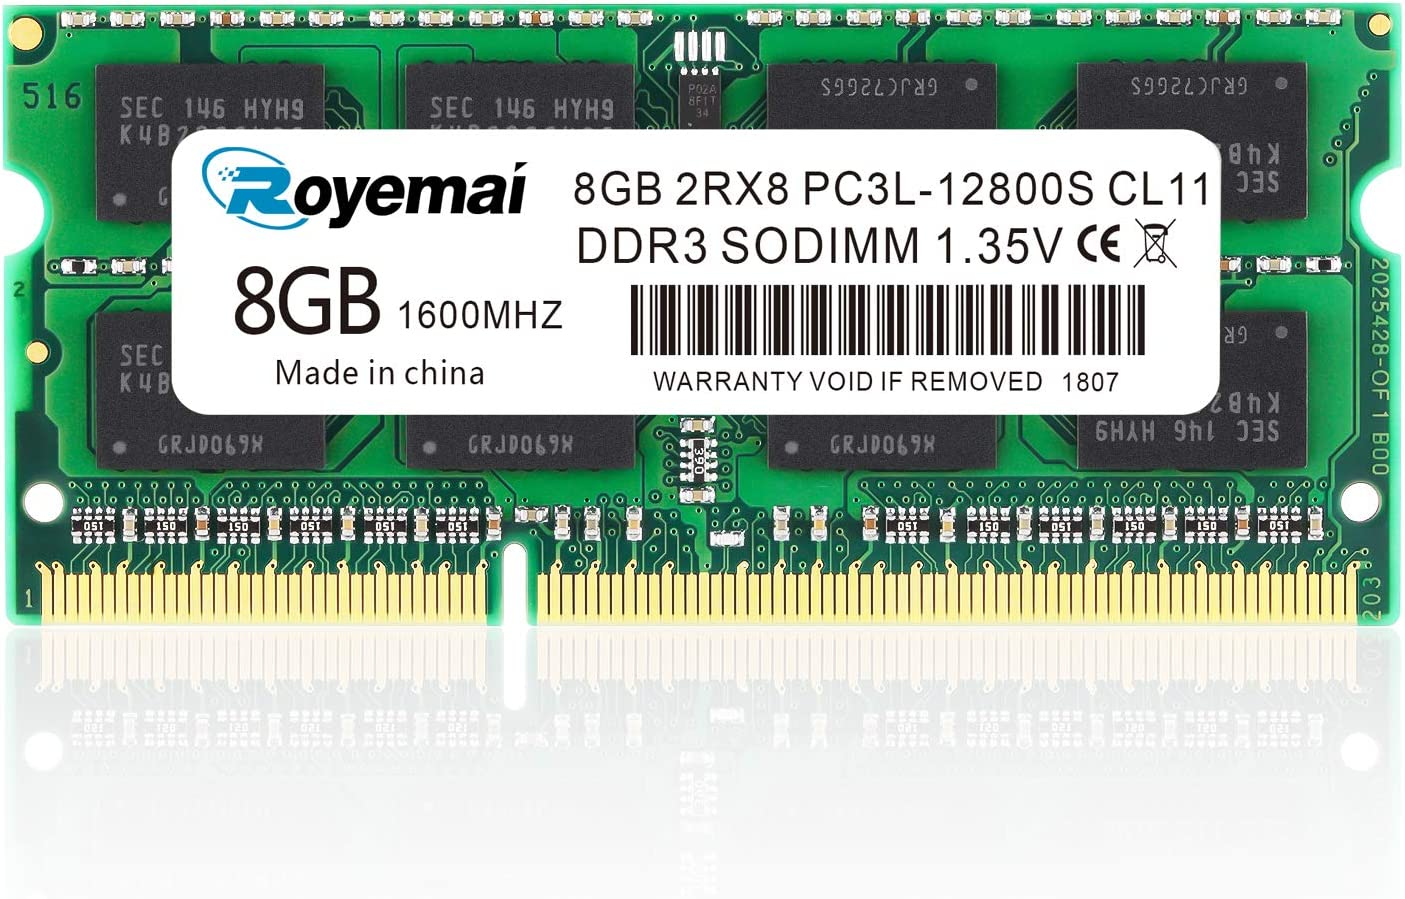 ROYEMAI DDR3 16GB Kit (2X8GB) PC3L 12800S 8GB DDR3 1600 Sodimm RAM 2Rx8 1.35V 204pin CL11 Notebook RAM Memory